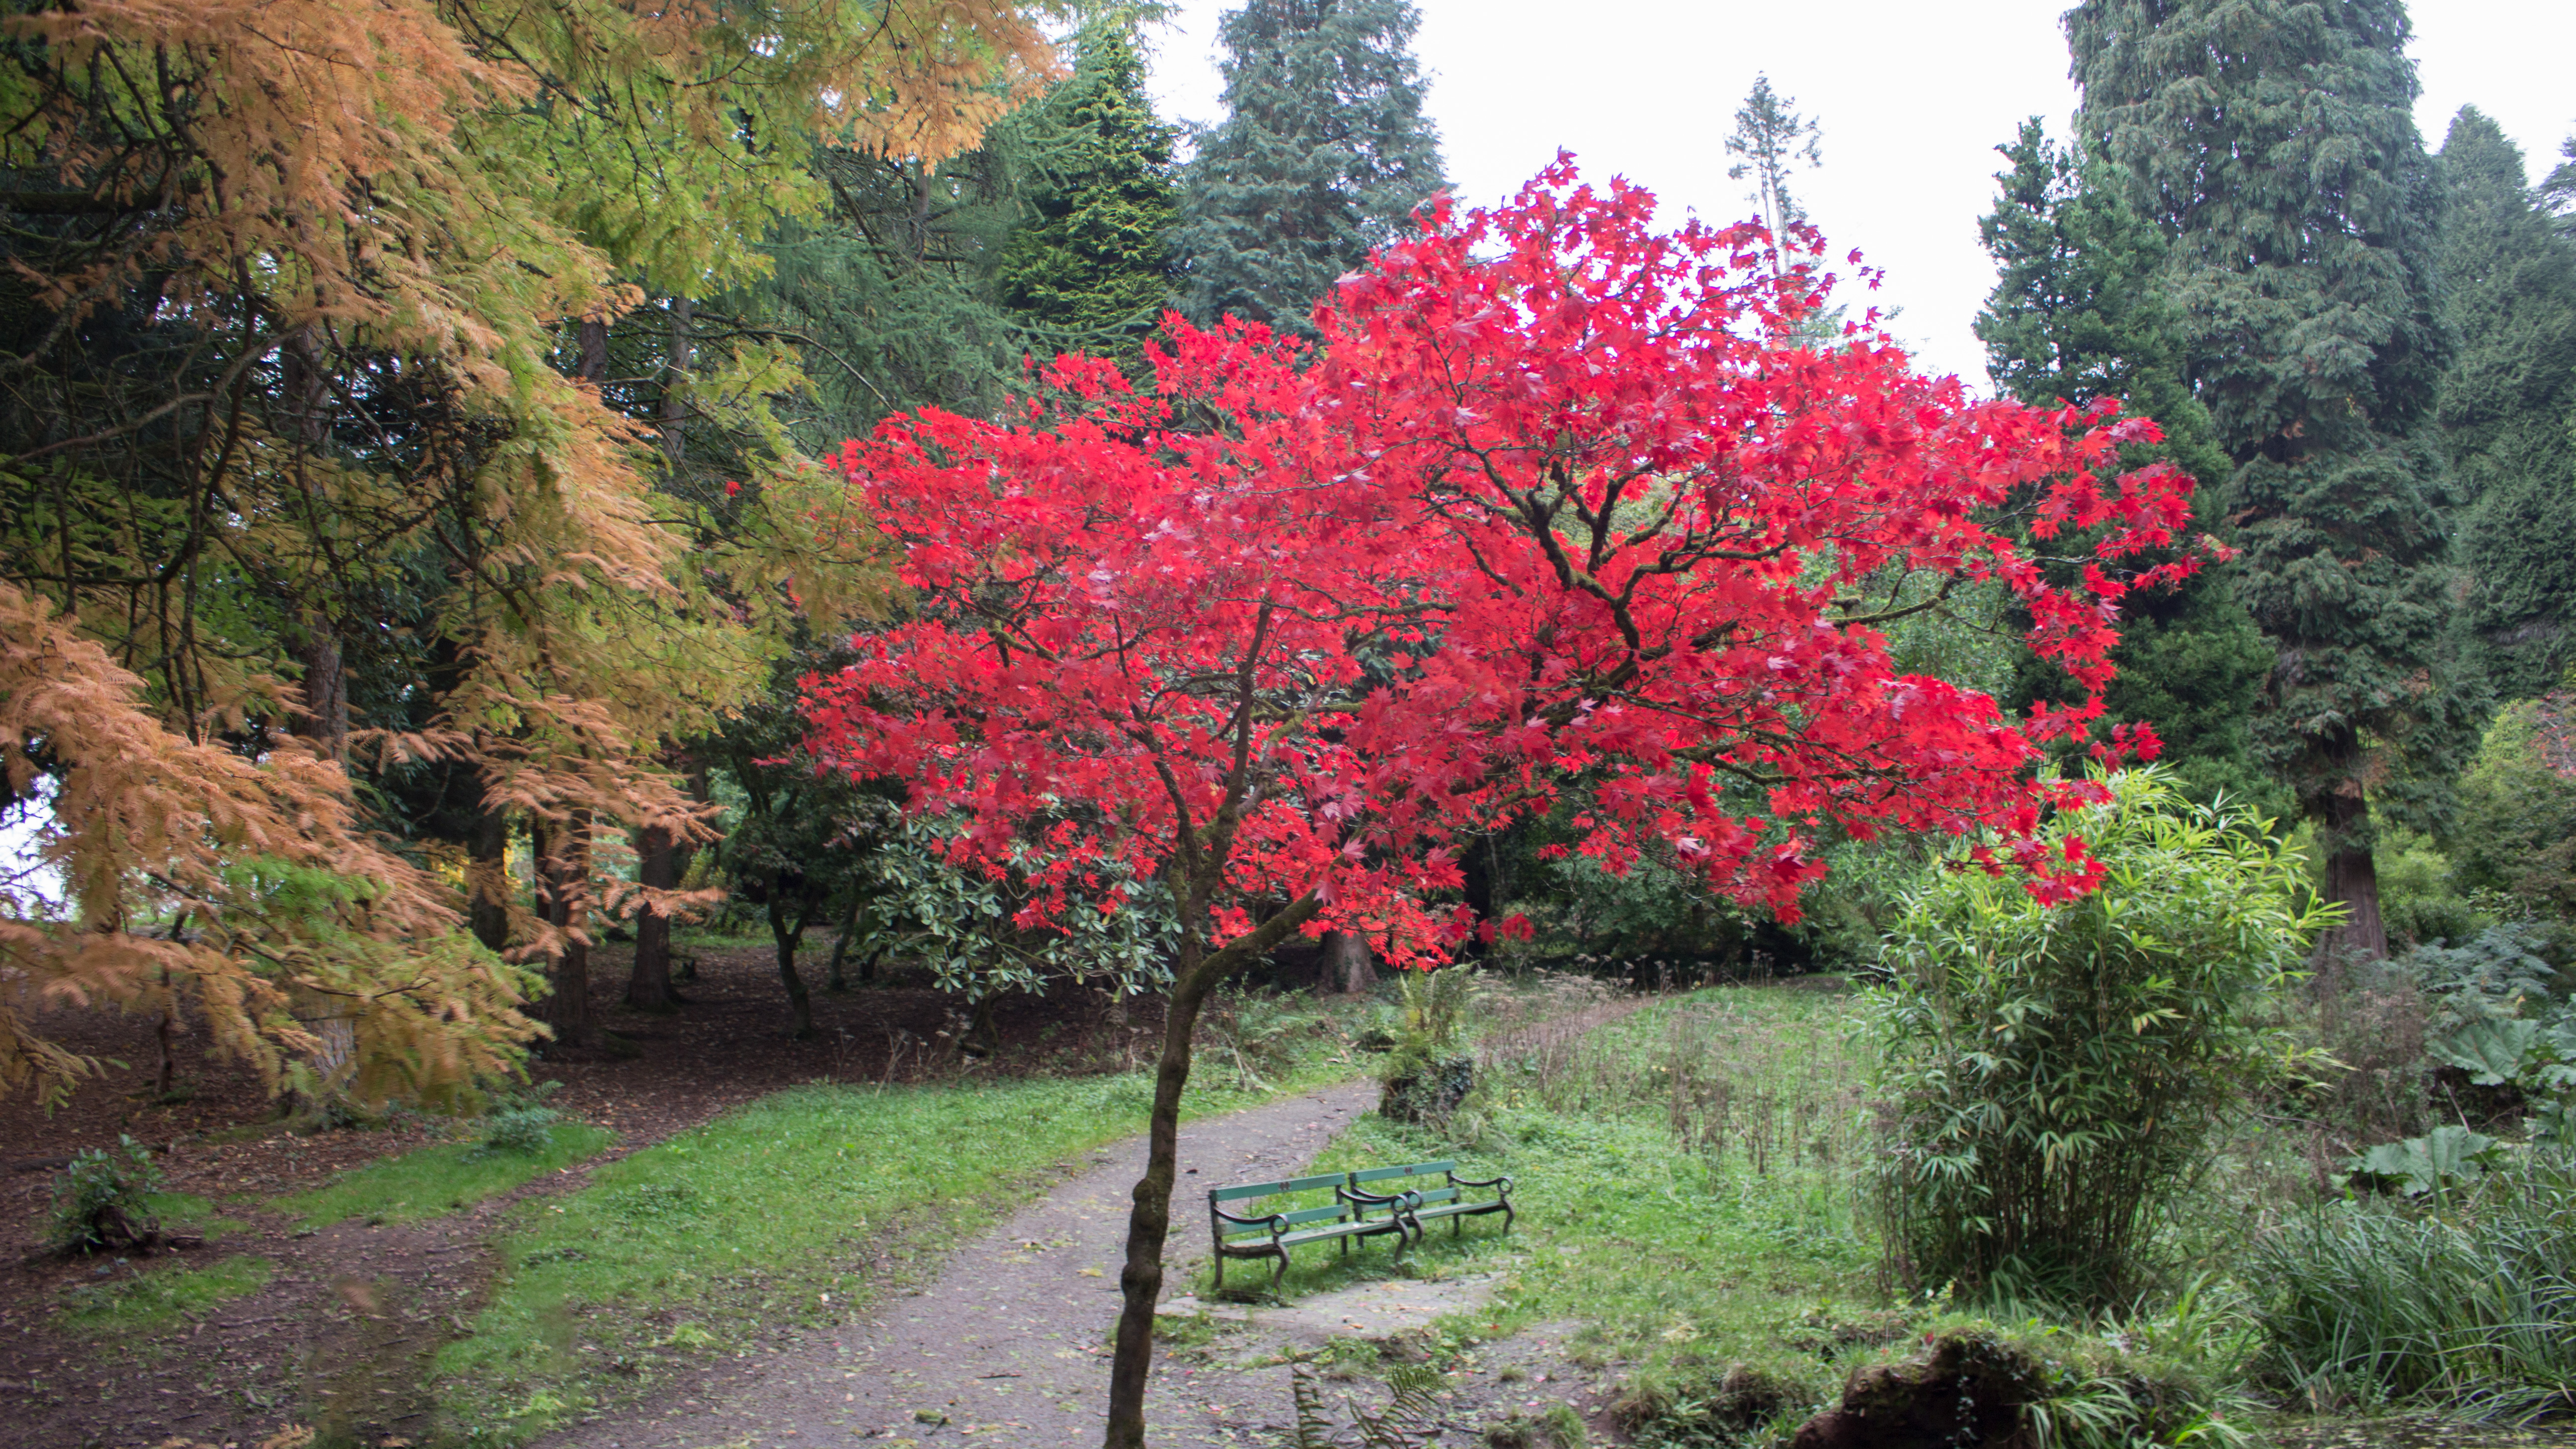 A photo of a tree with stunning red leaves, surrounded by Autumnal trees.